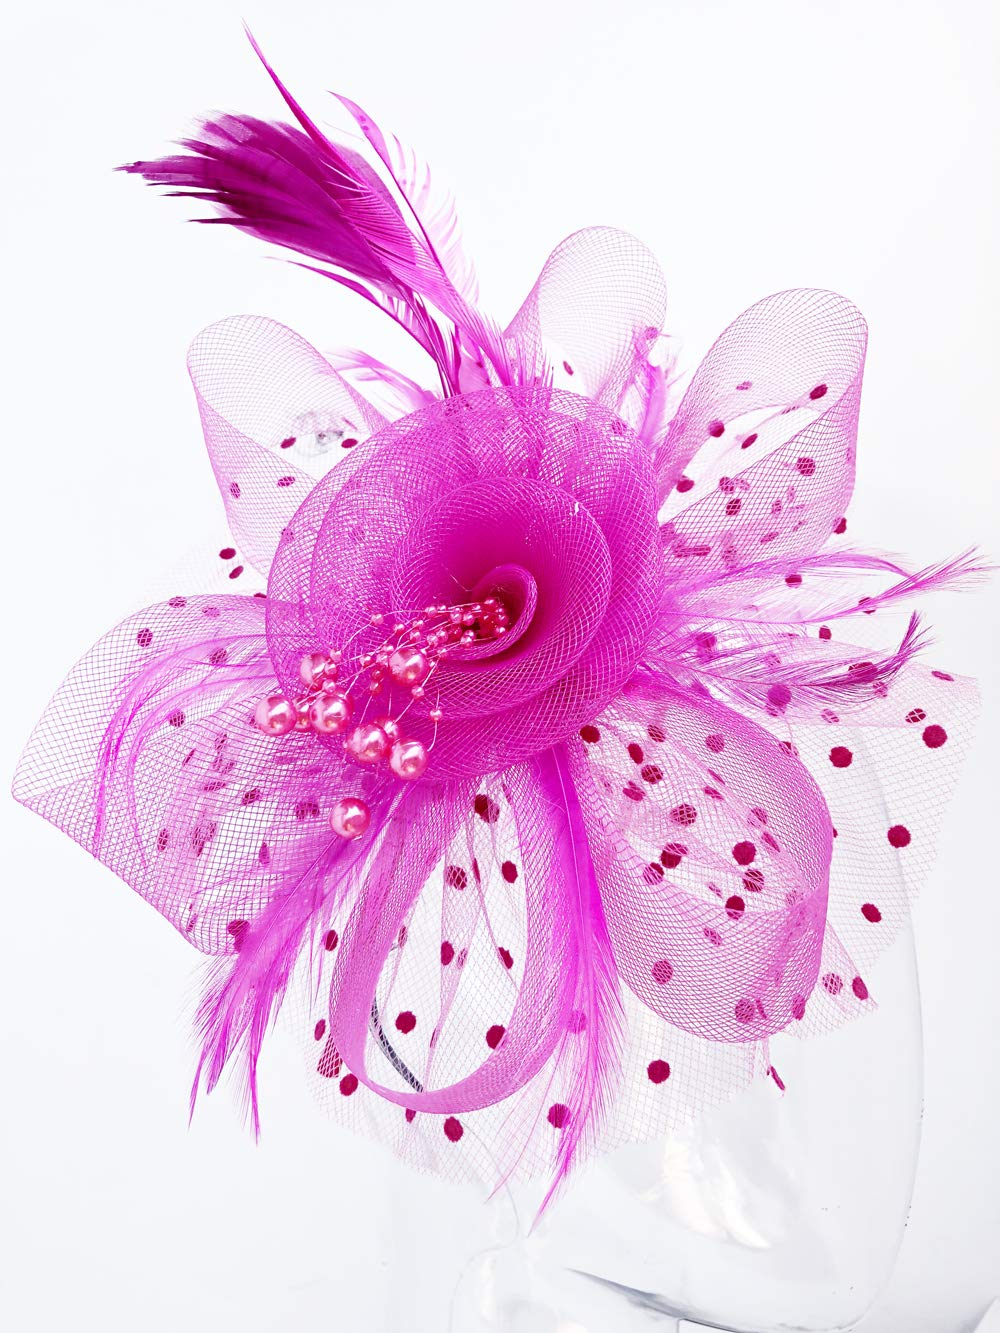 Flower Cocktail Tea Party Headwear Feather Fascinators Top Hat for Girls and Women (Fushia) by Kathyclassic (Image #4)